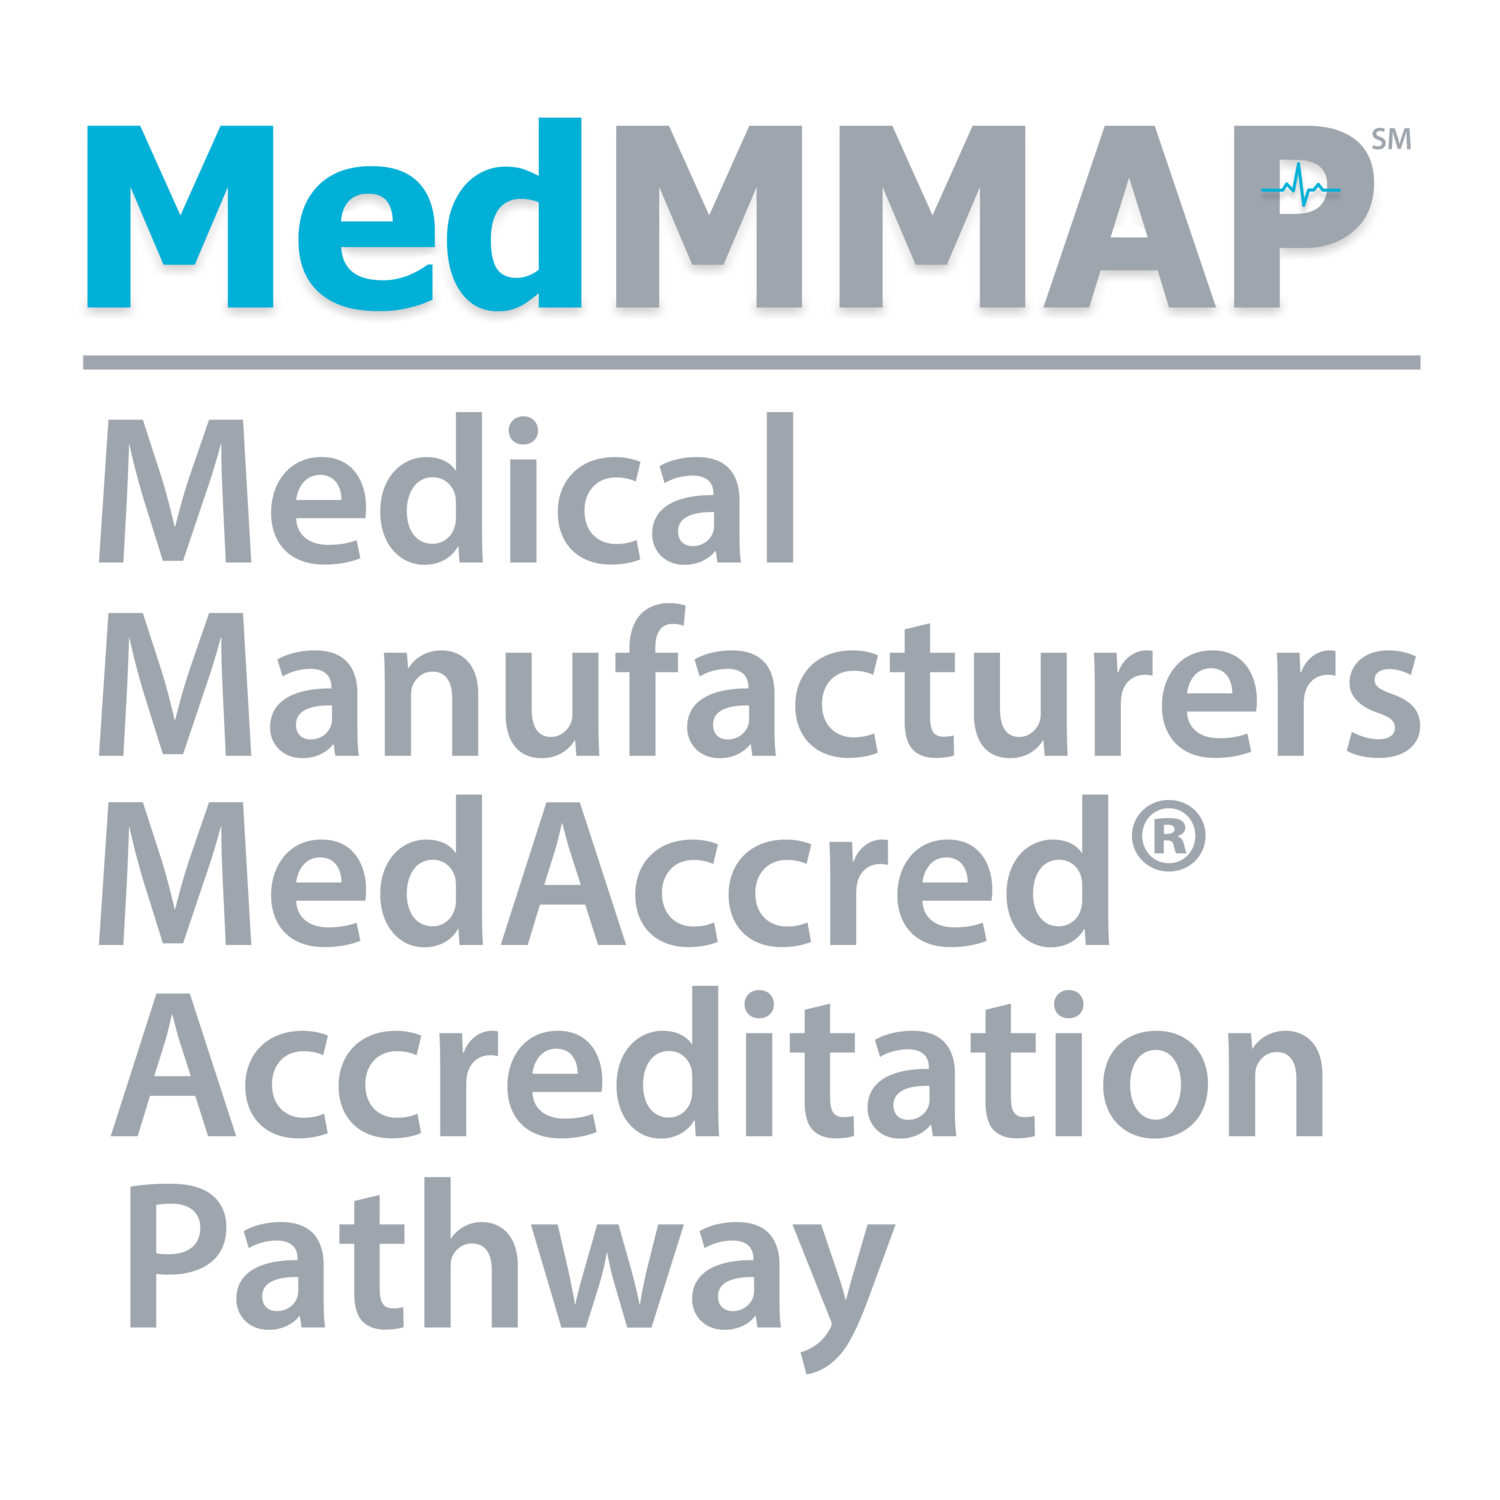 Medical Manufacturers MedAccred® Accreditation Pathway